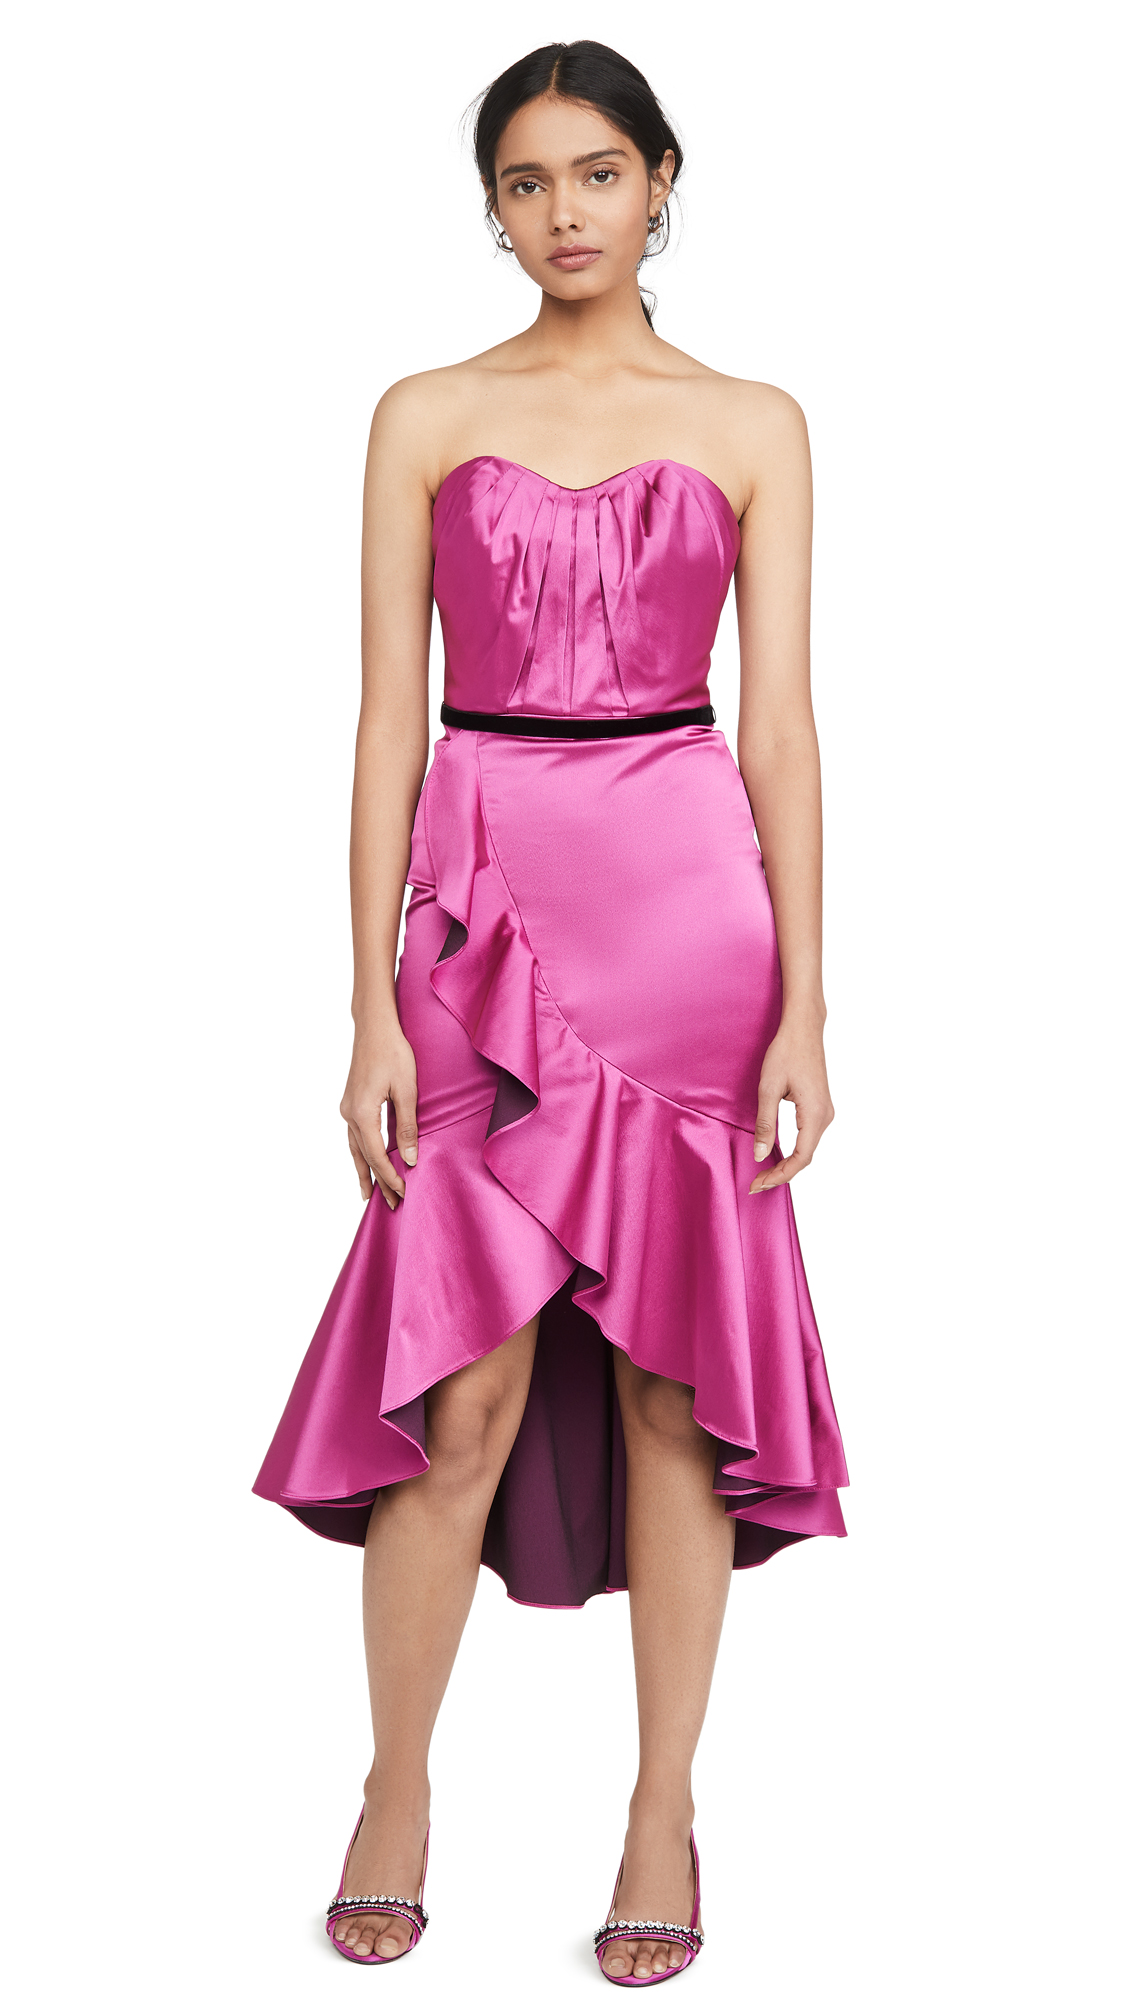 Buy Marchesa Notte Strapless Draped Sweetheart Cocktail Dress online beautiful Marchesa Notte Dresses, Strapless